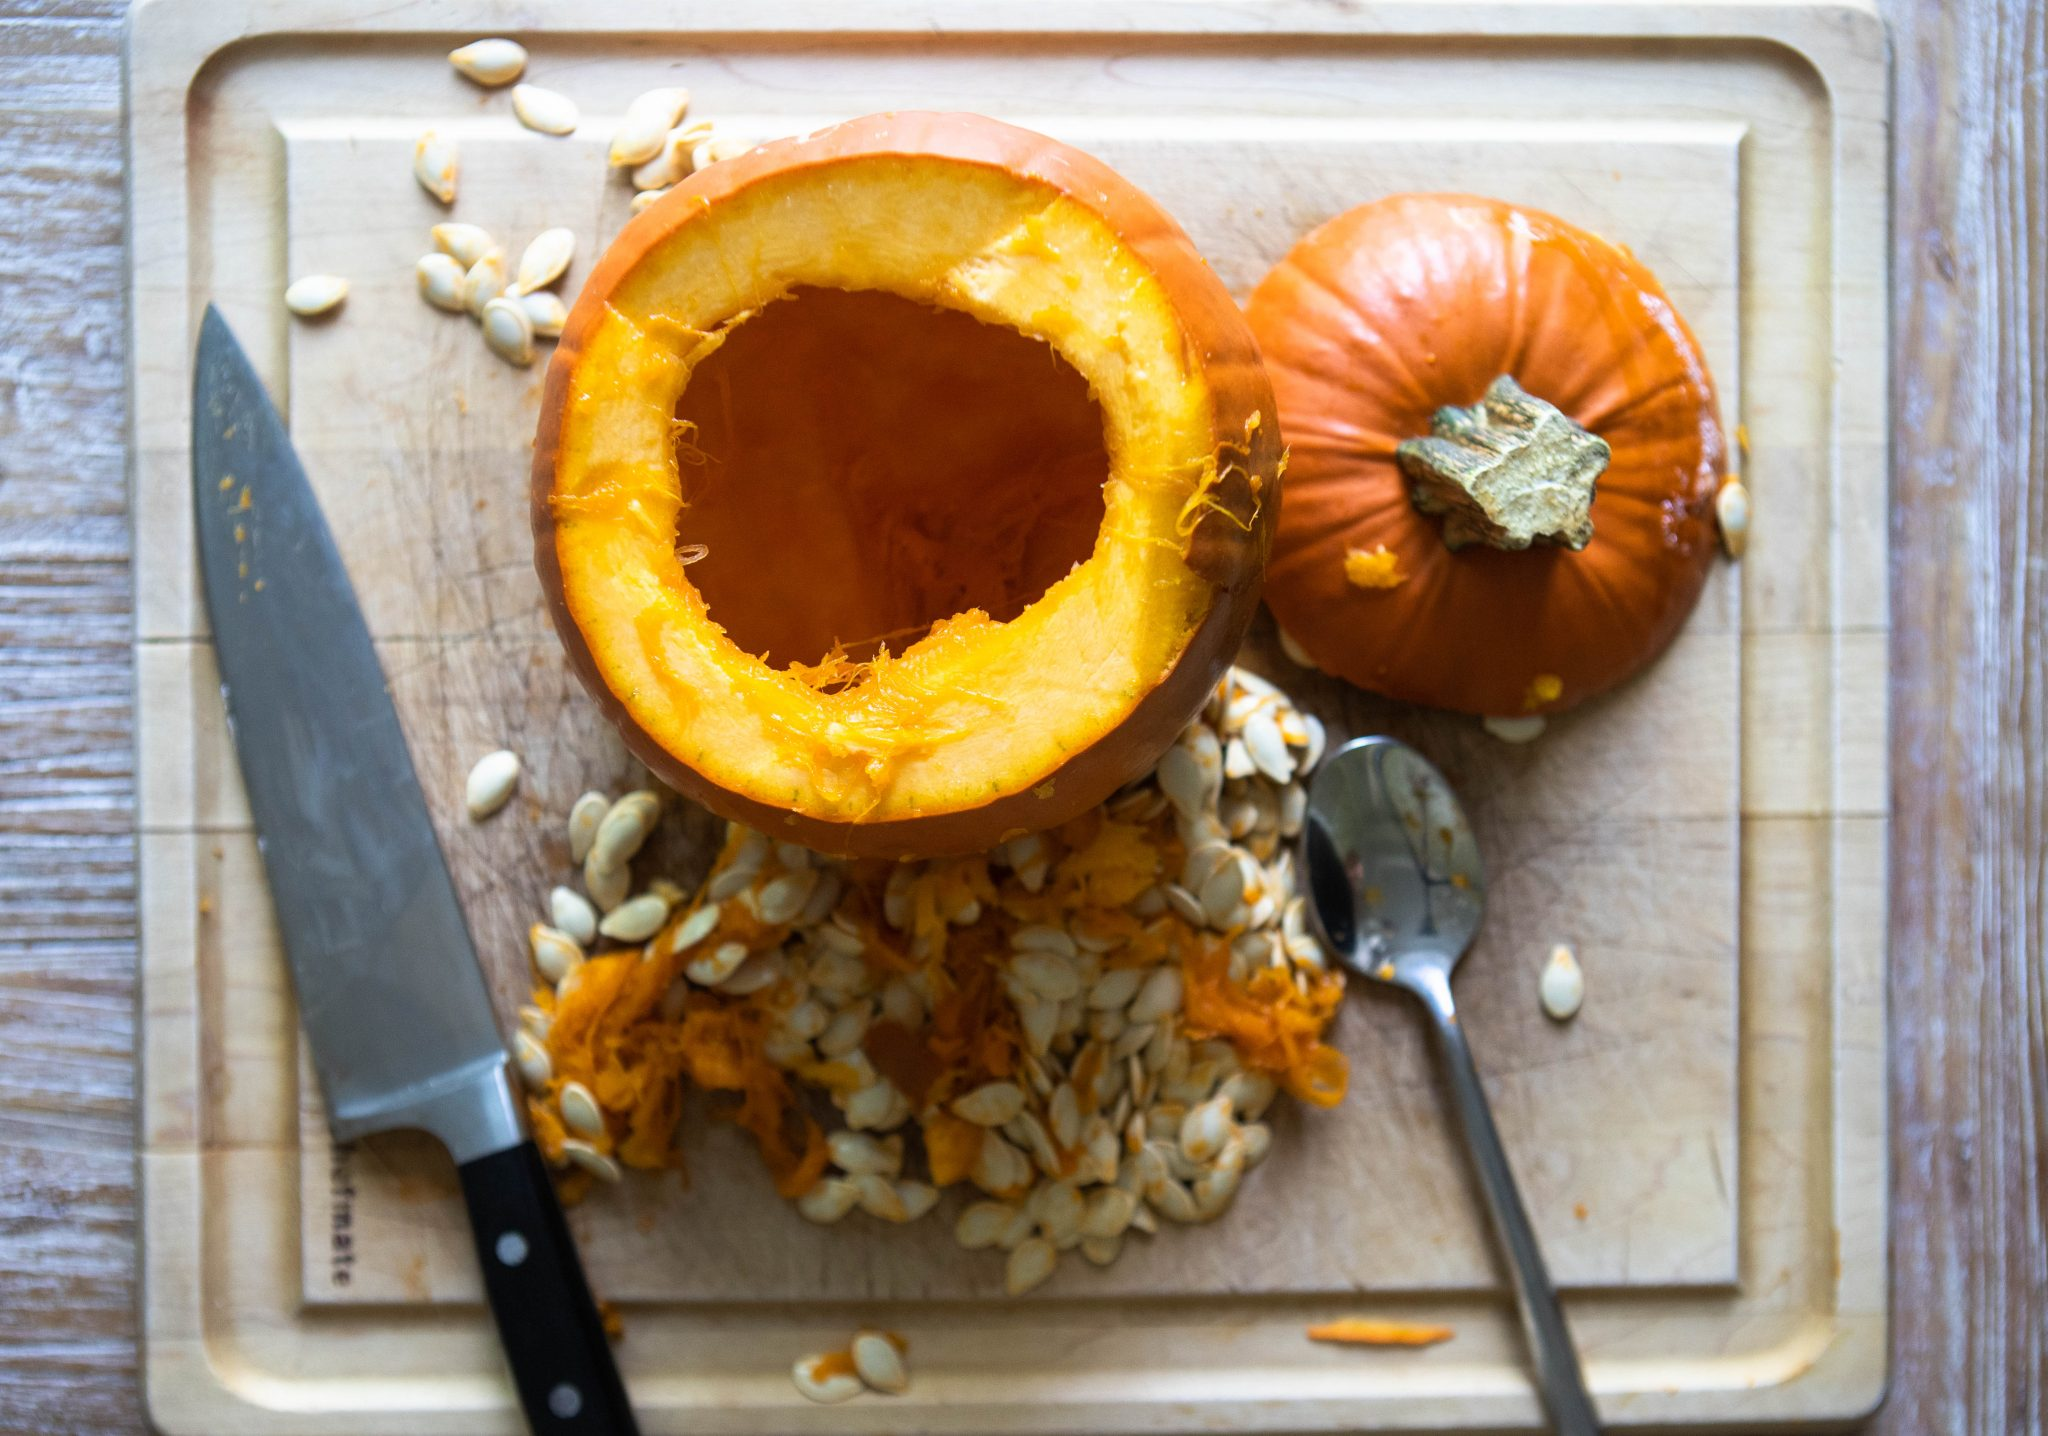 cutting board with a pumpkin cut open and seeds scooped out, next to a knife